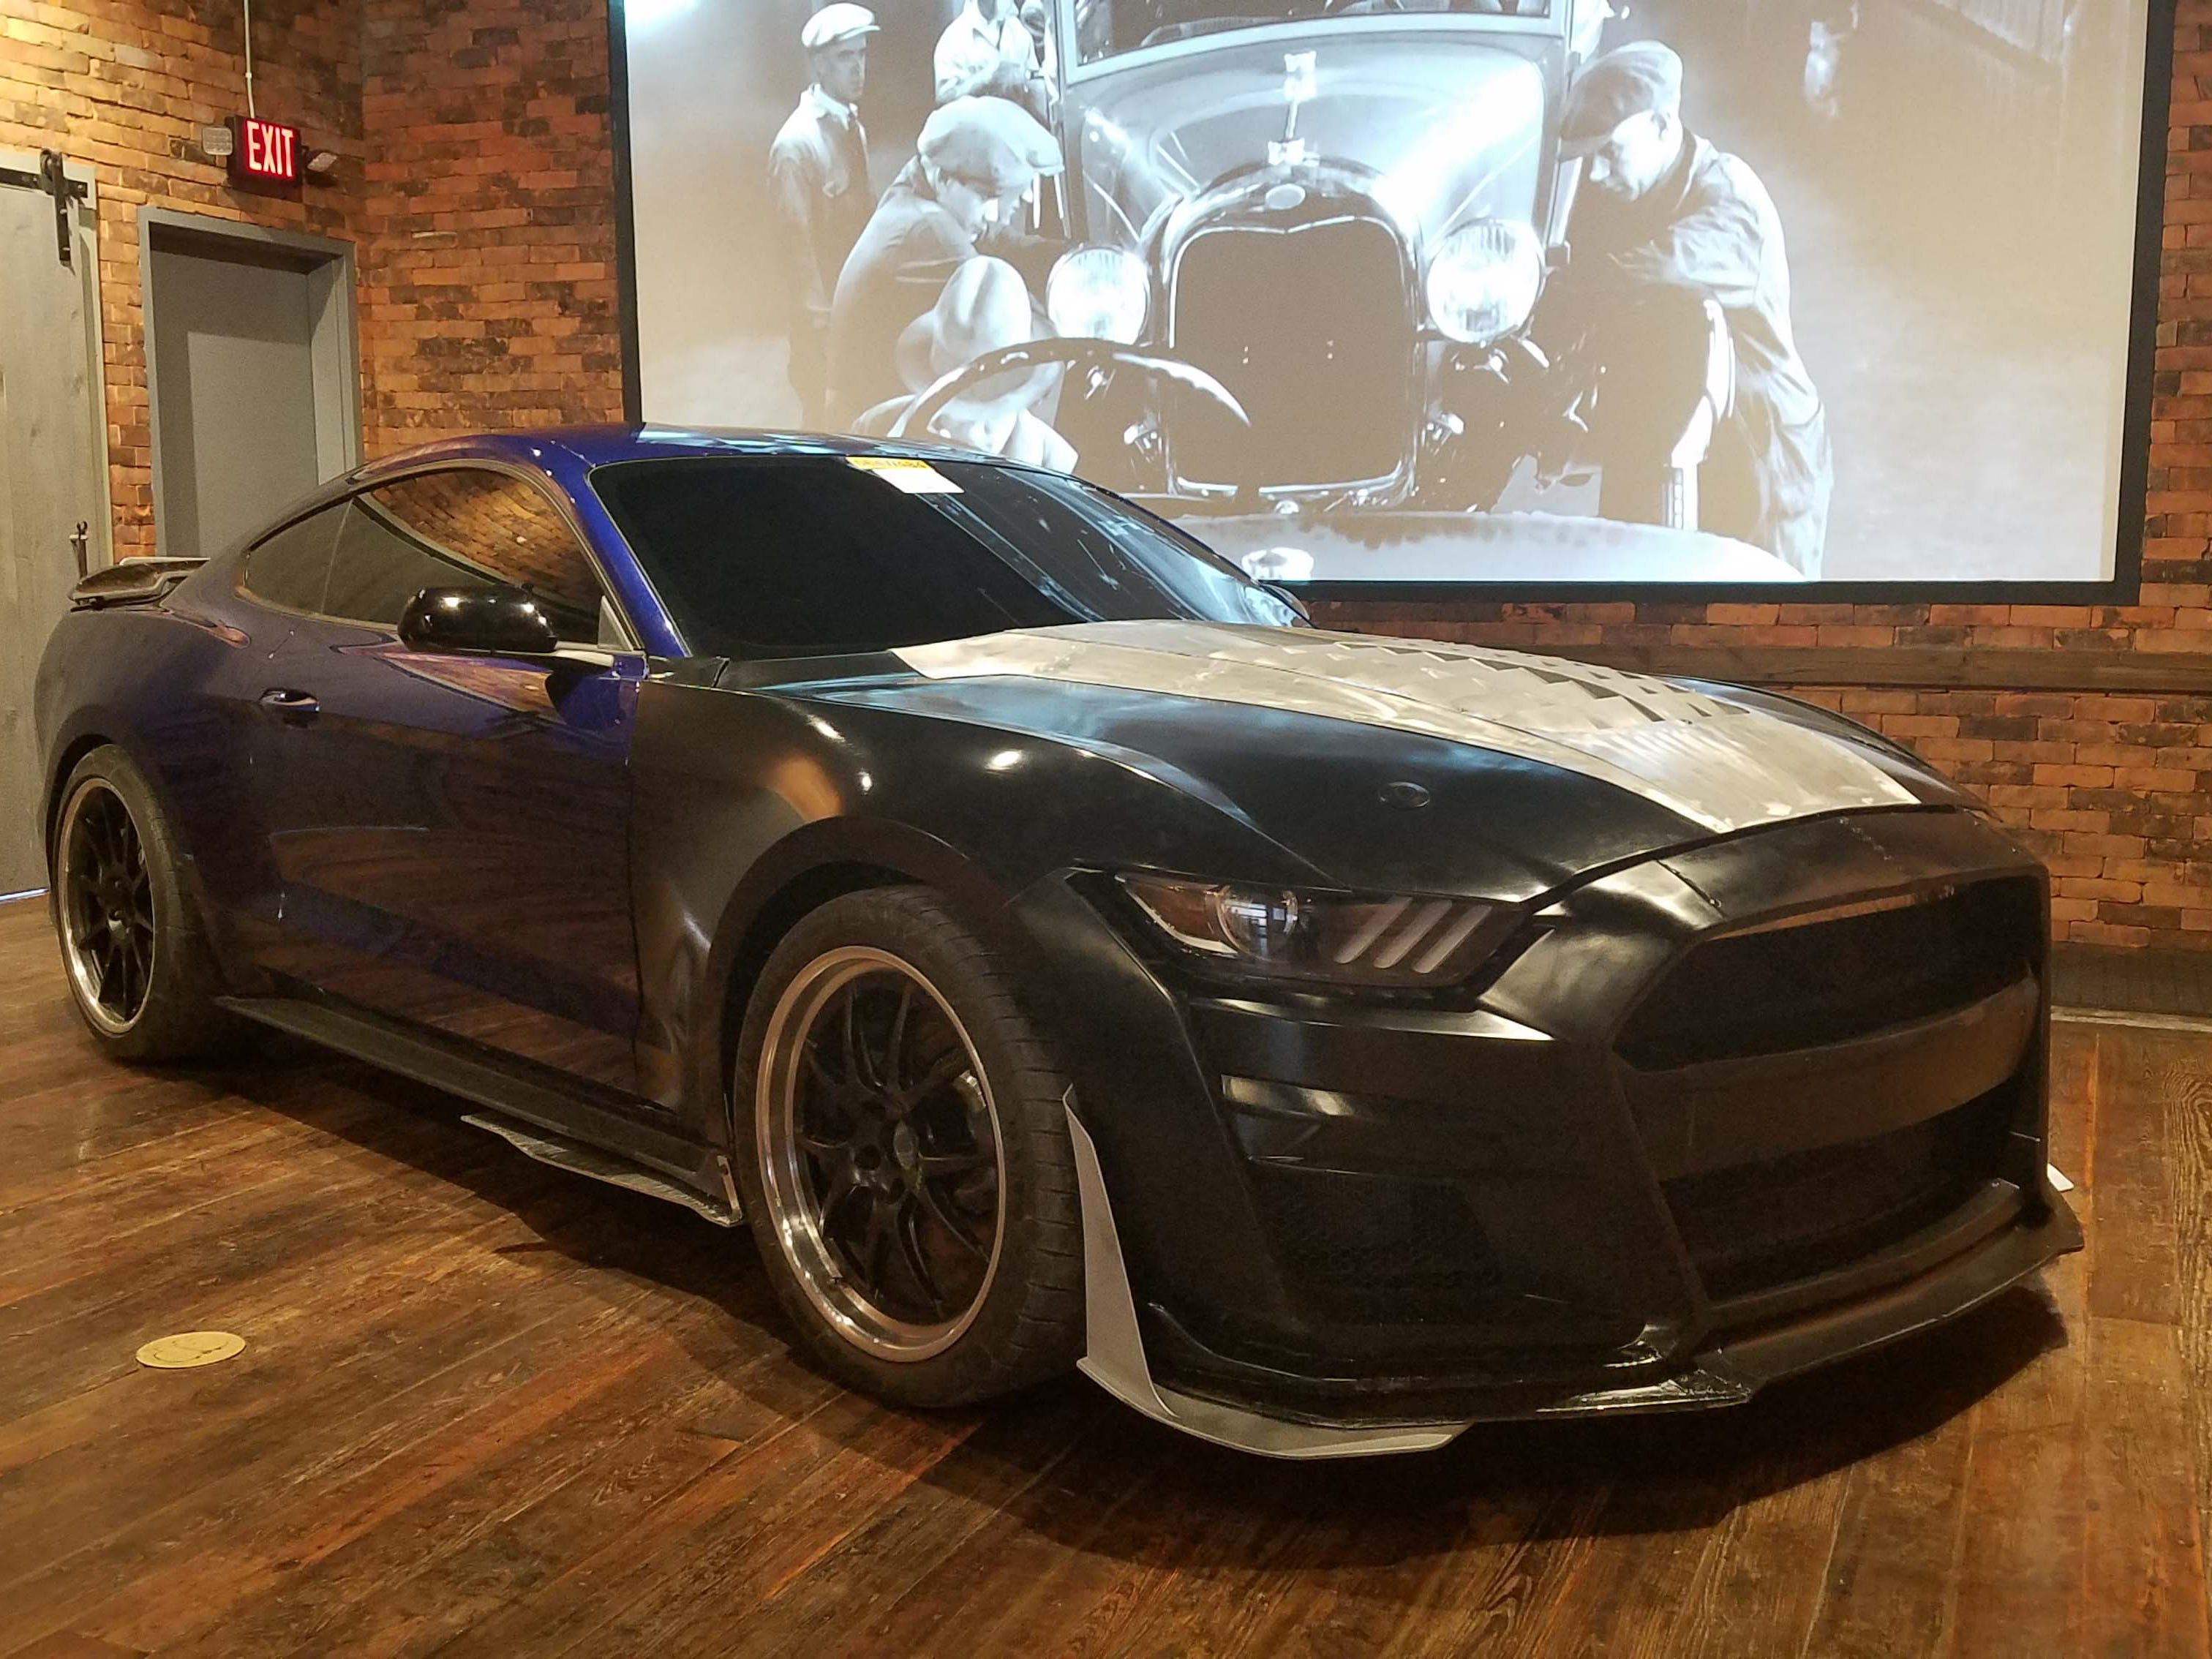 """The Buck. Before a Mustang GT500 prototype is ever made, engineers 3D-printed parts then added them to this Mustang GT """"Buck"""" - or mule - to test aerodynamic demands in the wind tunnel."""